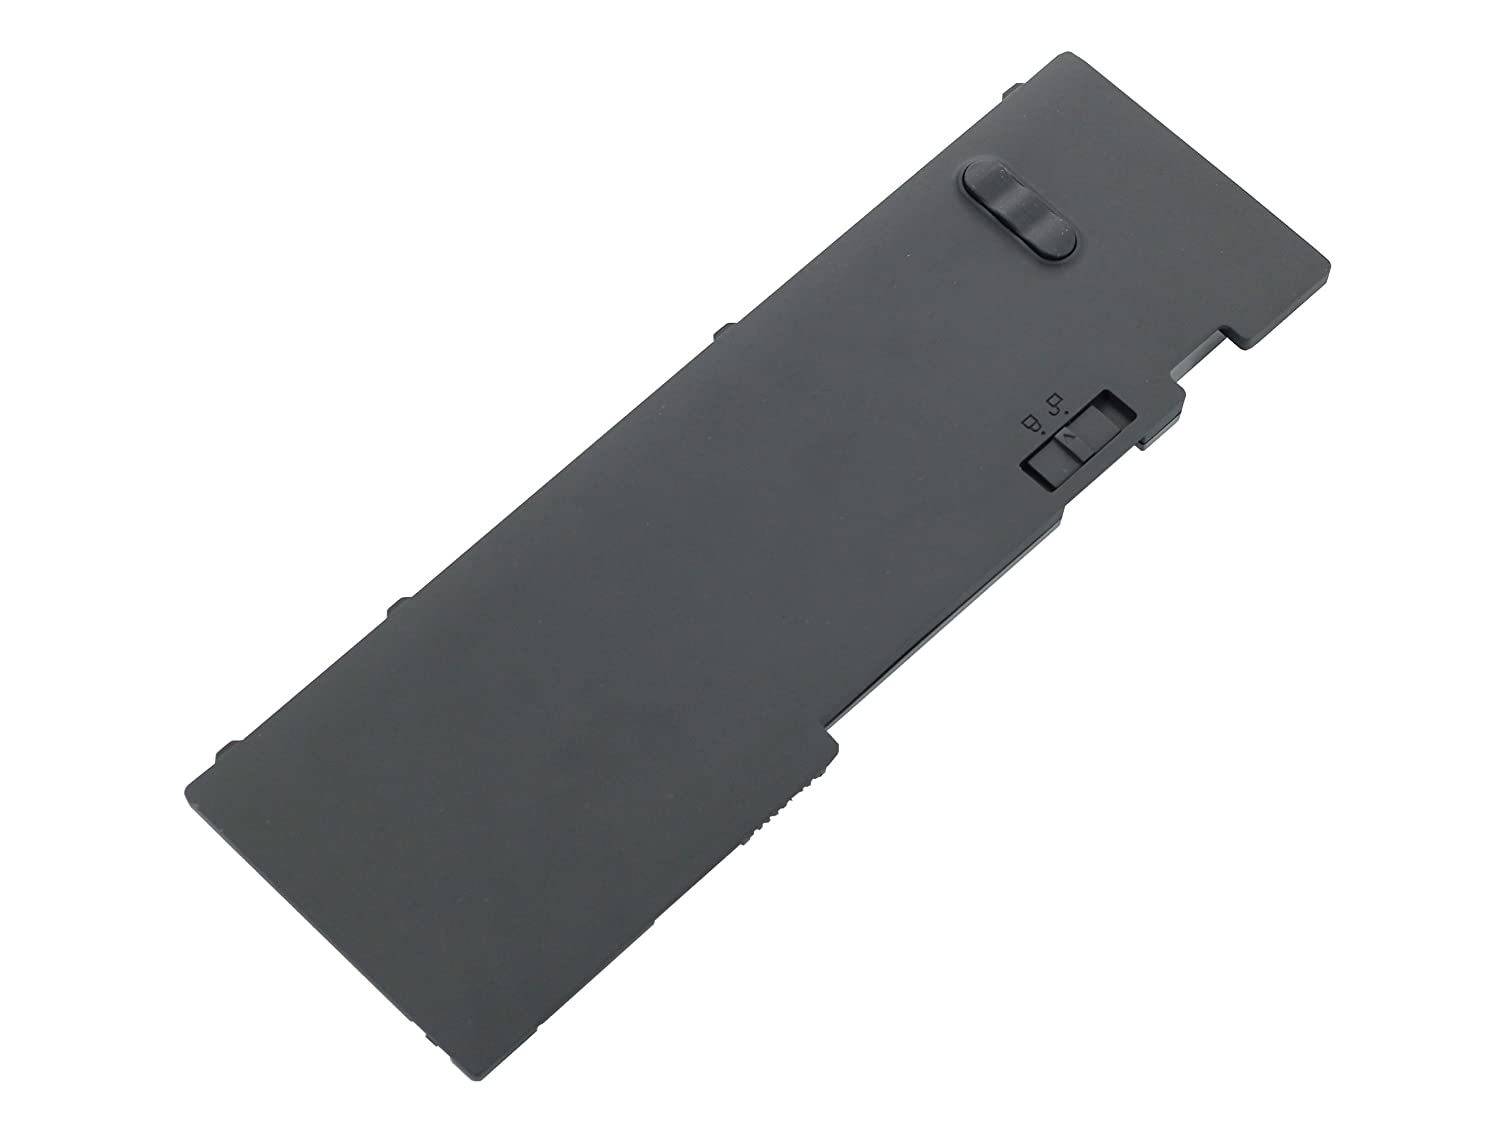 3900mah 11.1v BATTERIA ORIGINALE 0a36287 LiIon Lenovo ThinkPad t420s Nero